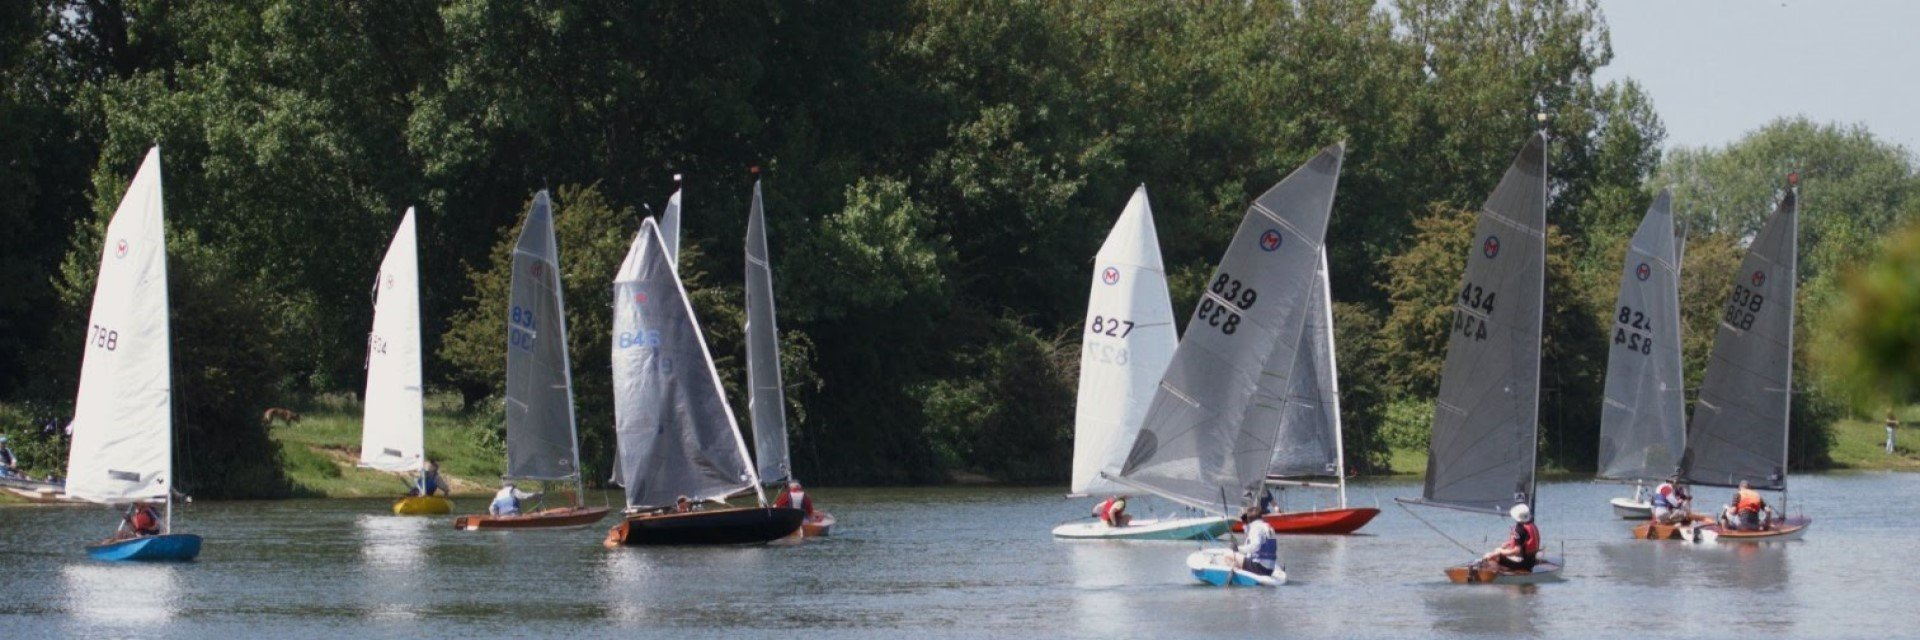 Medley Sailing Club Oxford